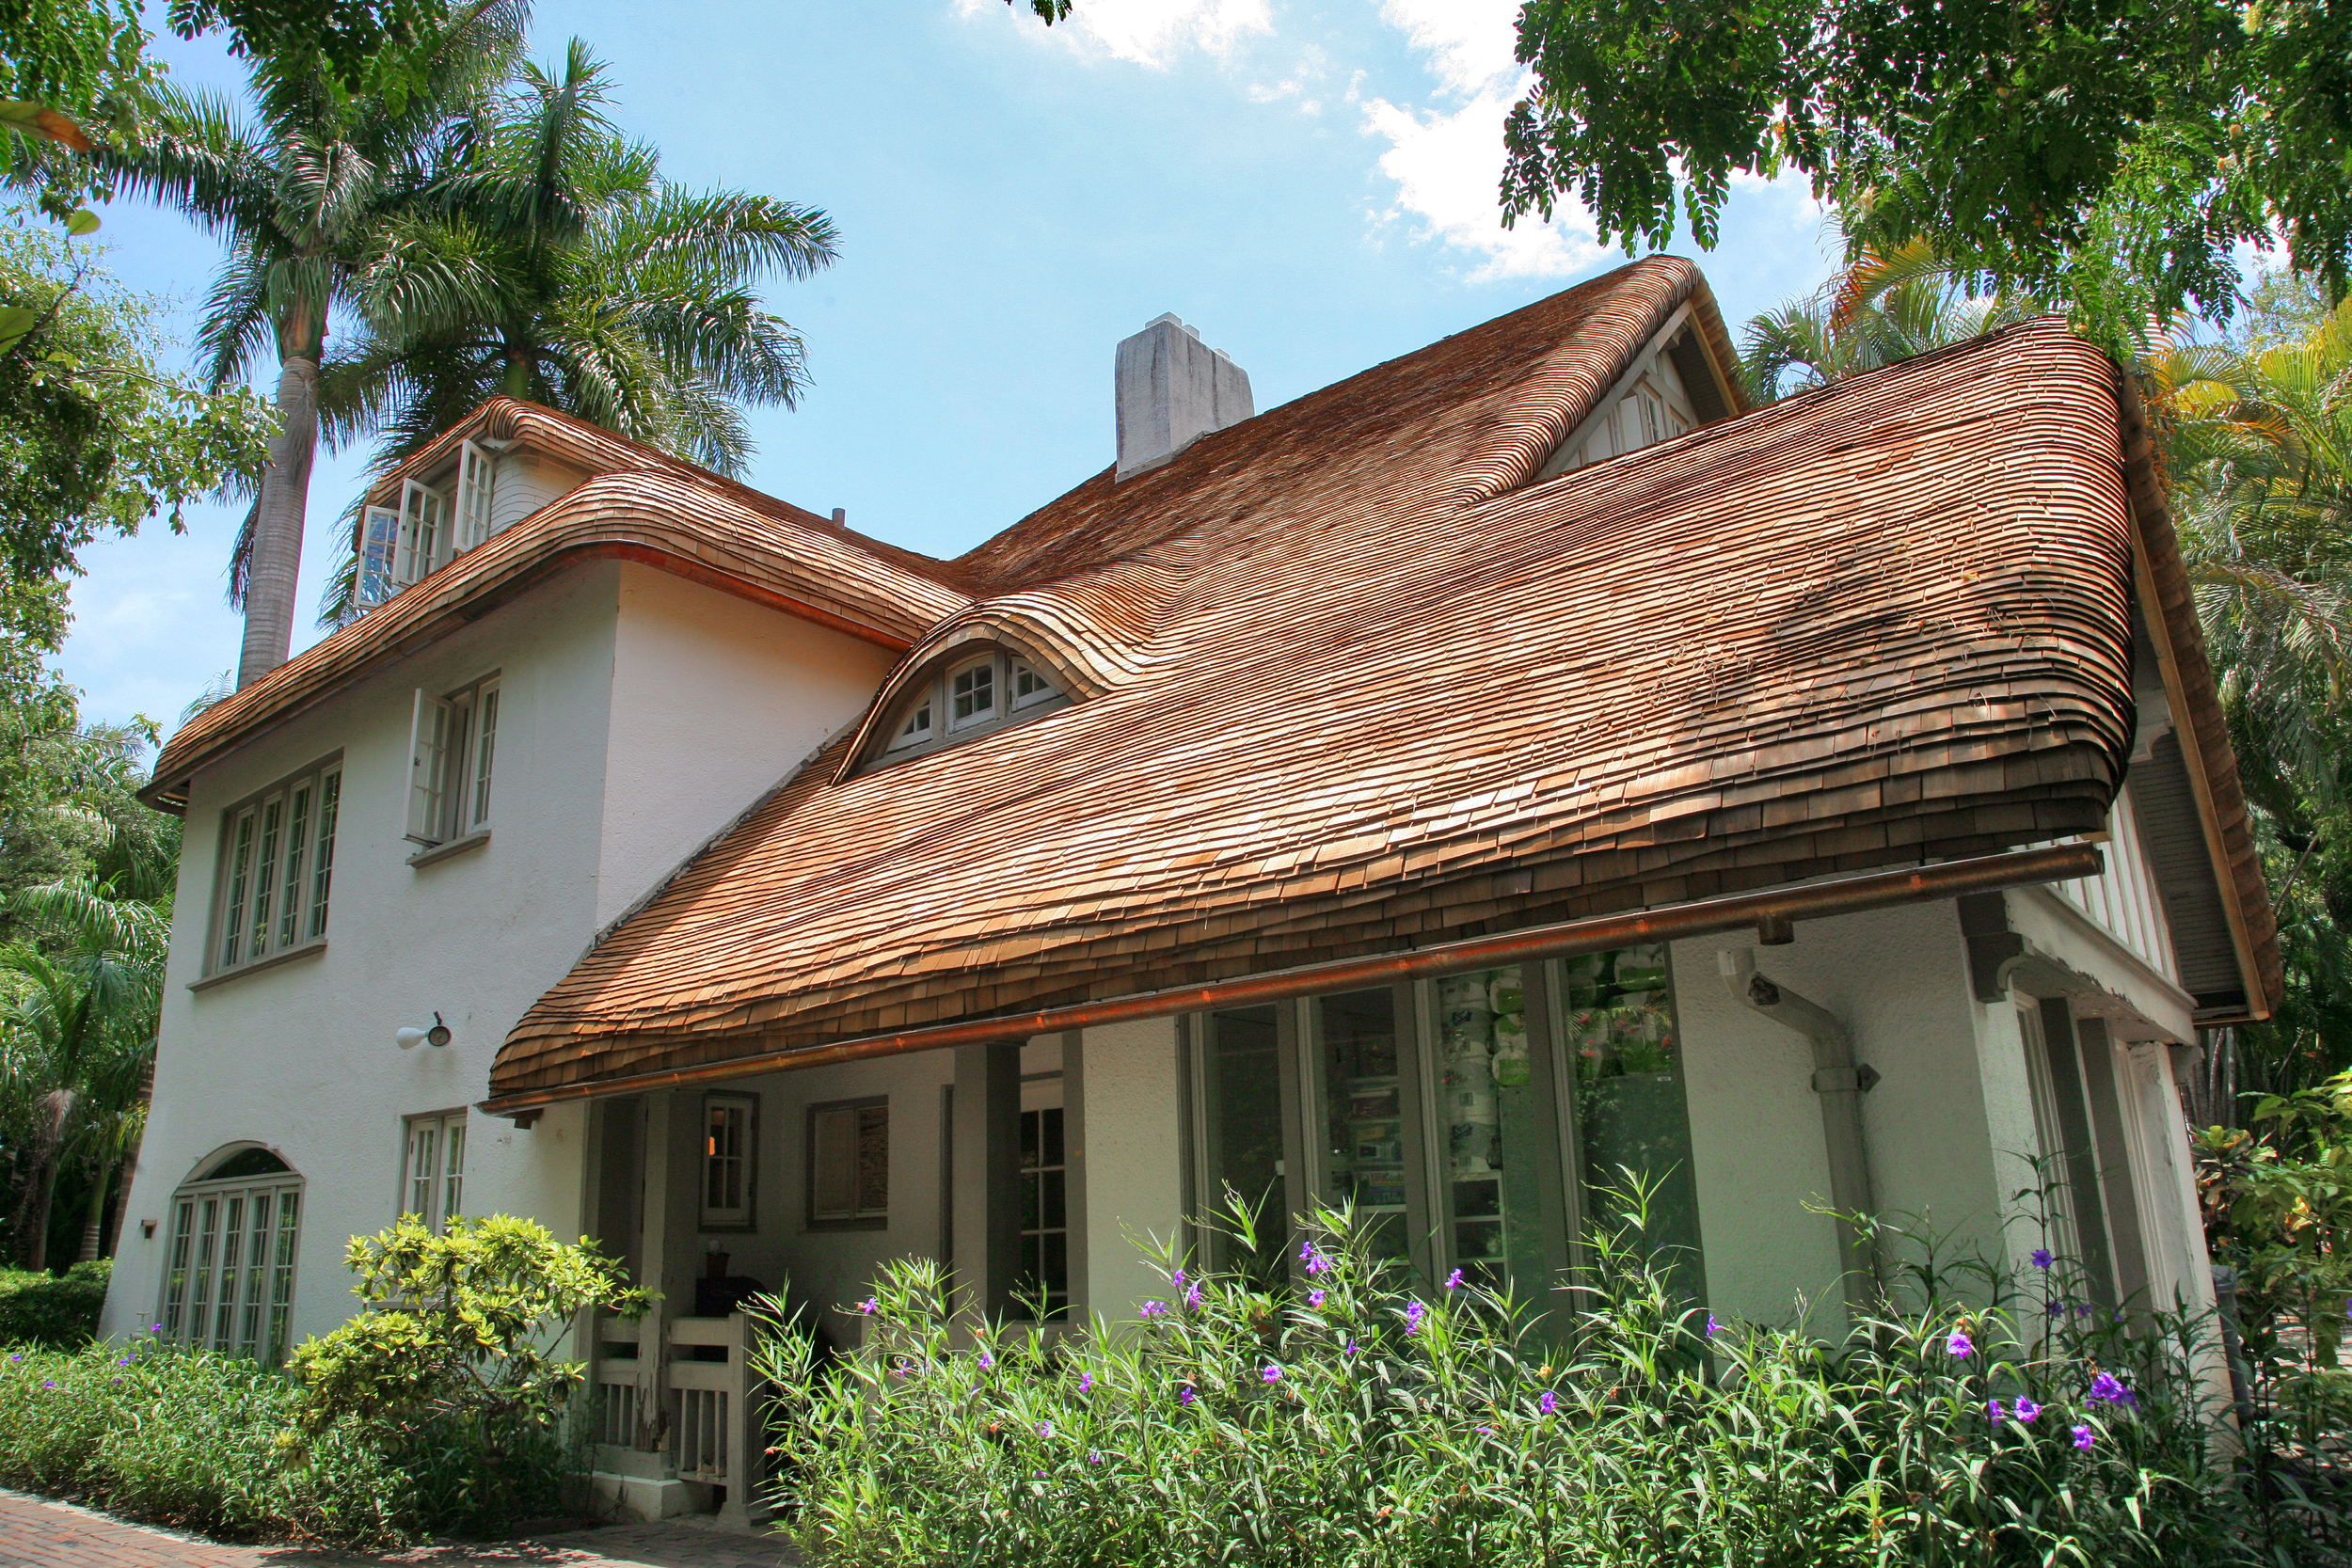 Historical-Cottage-Roof-Coconut-Grove,-FL-(3) copy.jpg